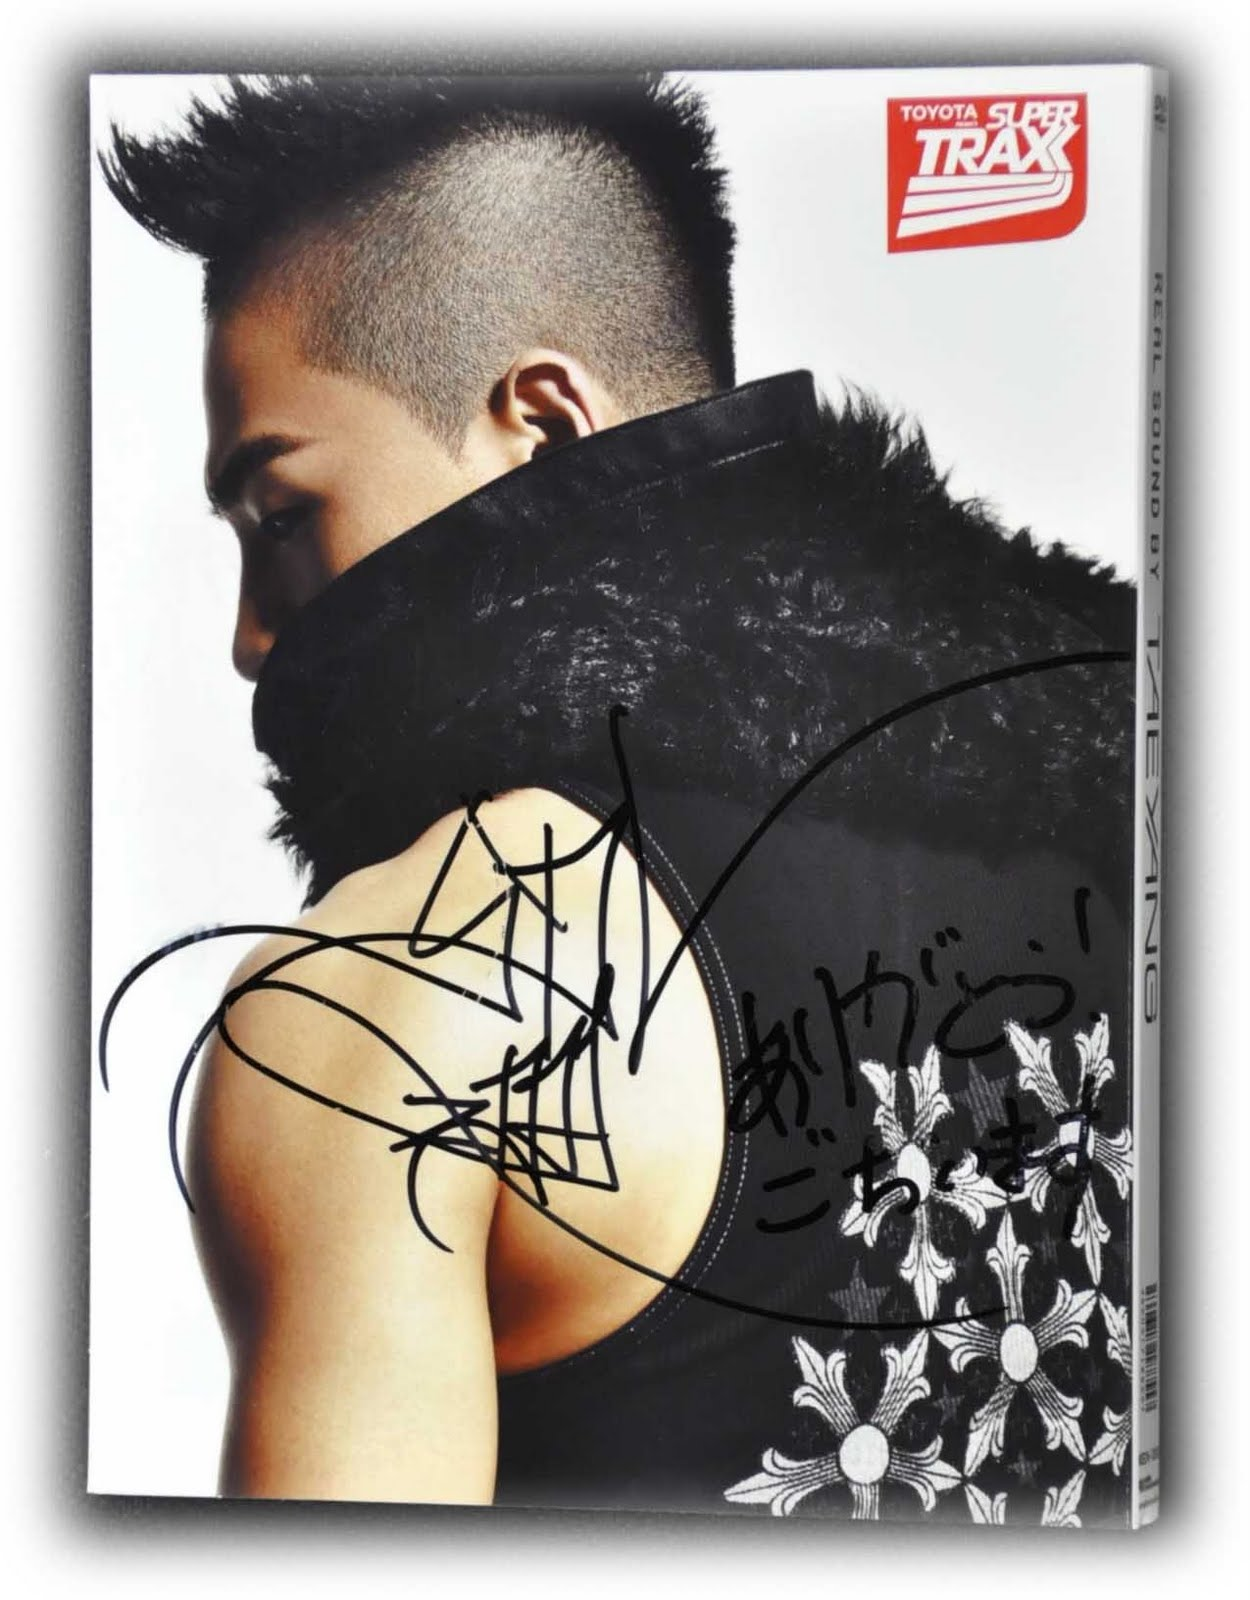 Taeyang  Photos Signed+gdtop+cd+for+supertraxx